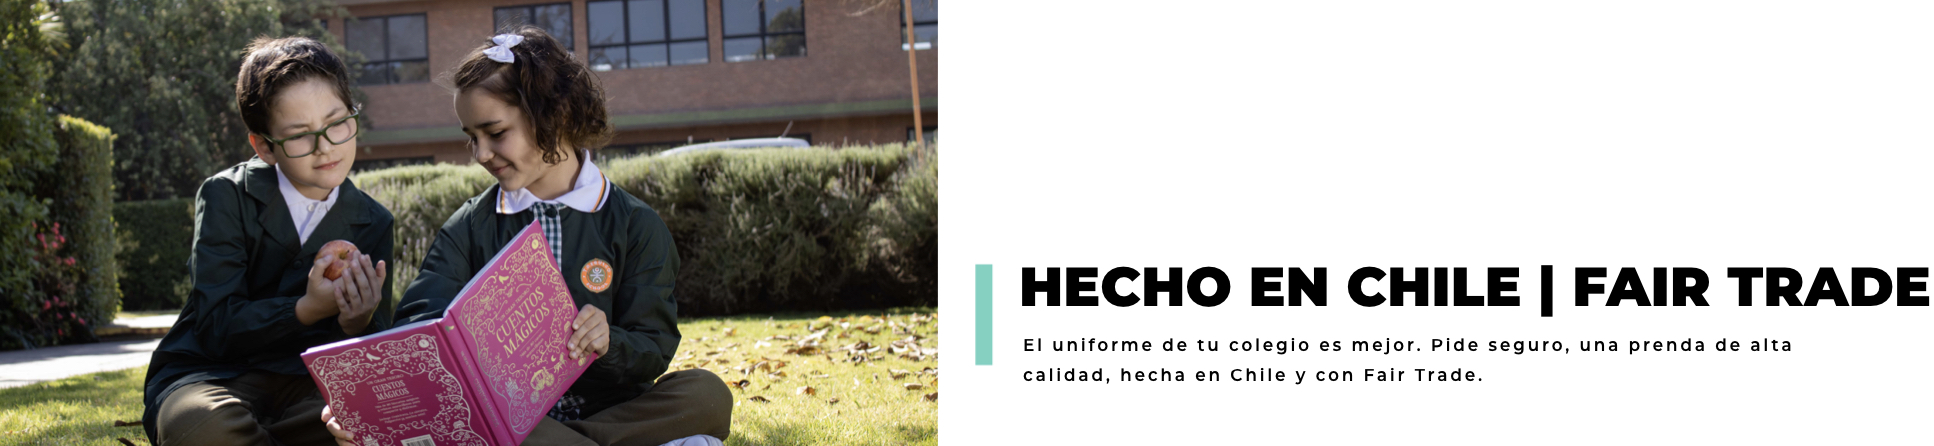 hecho en chile con fair trade